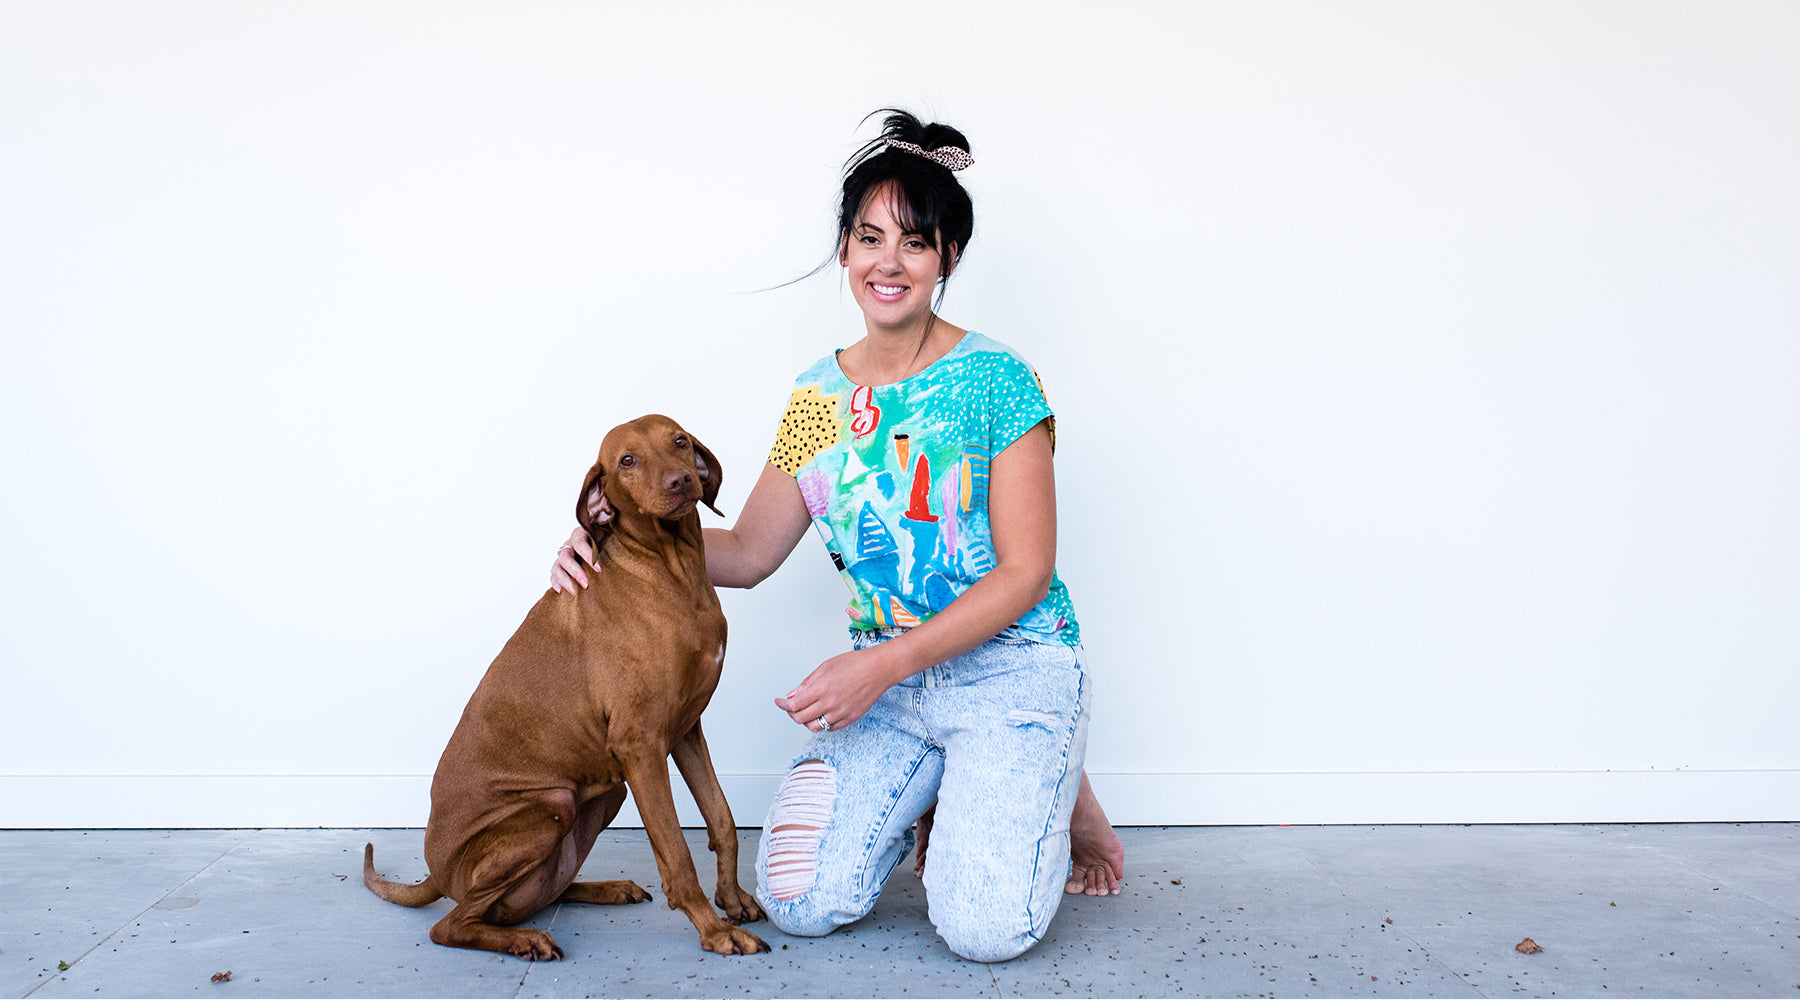 Deb McNaughton Artist - Deb and her dog - Commission me to create am original piece of art - Melbourne